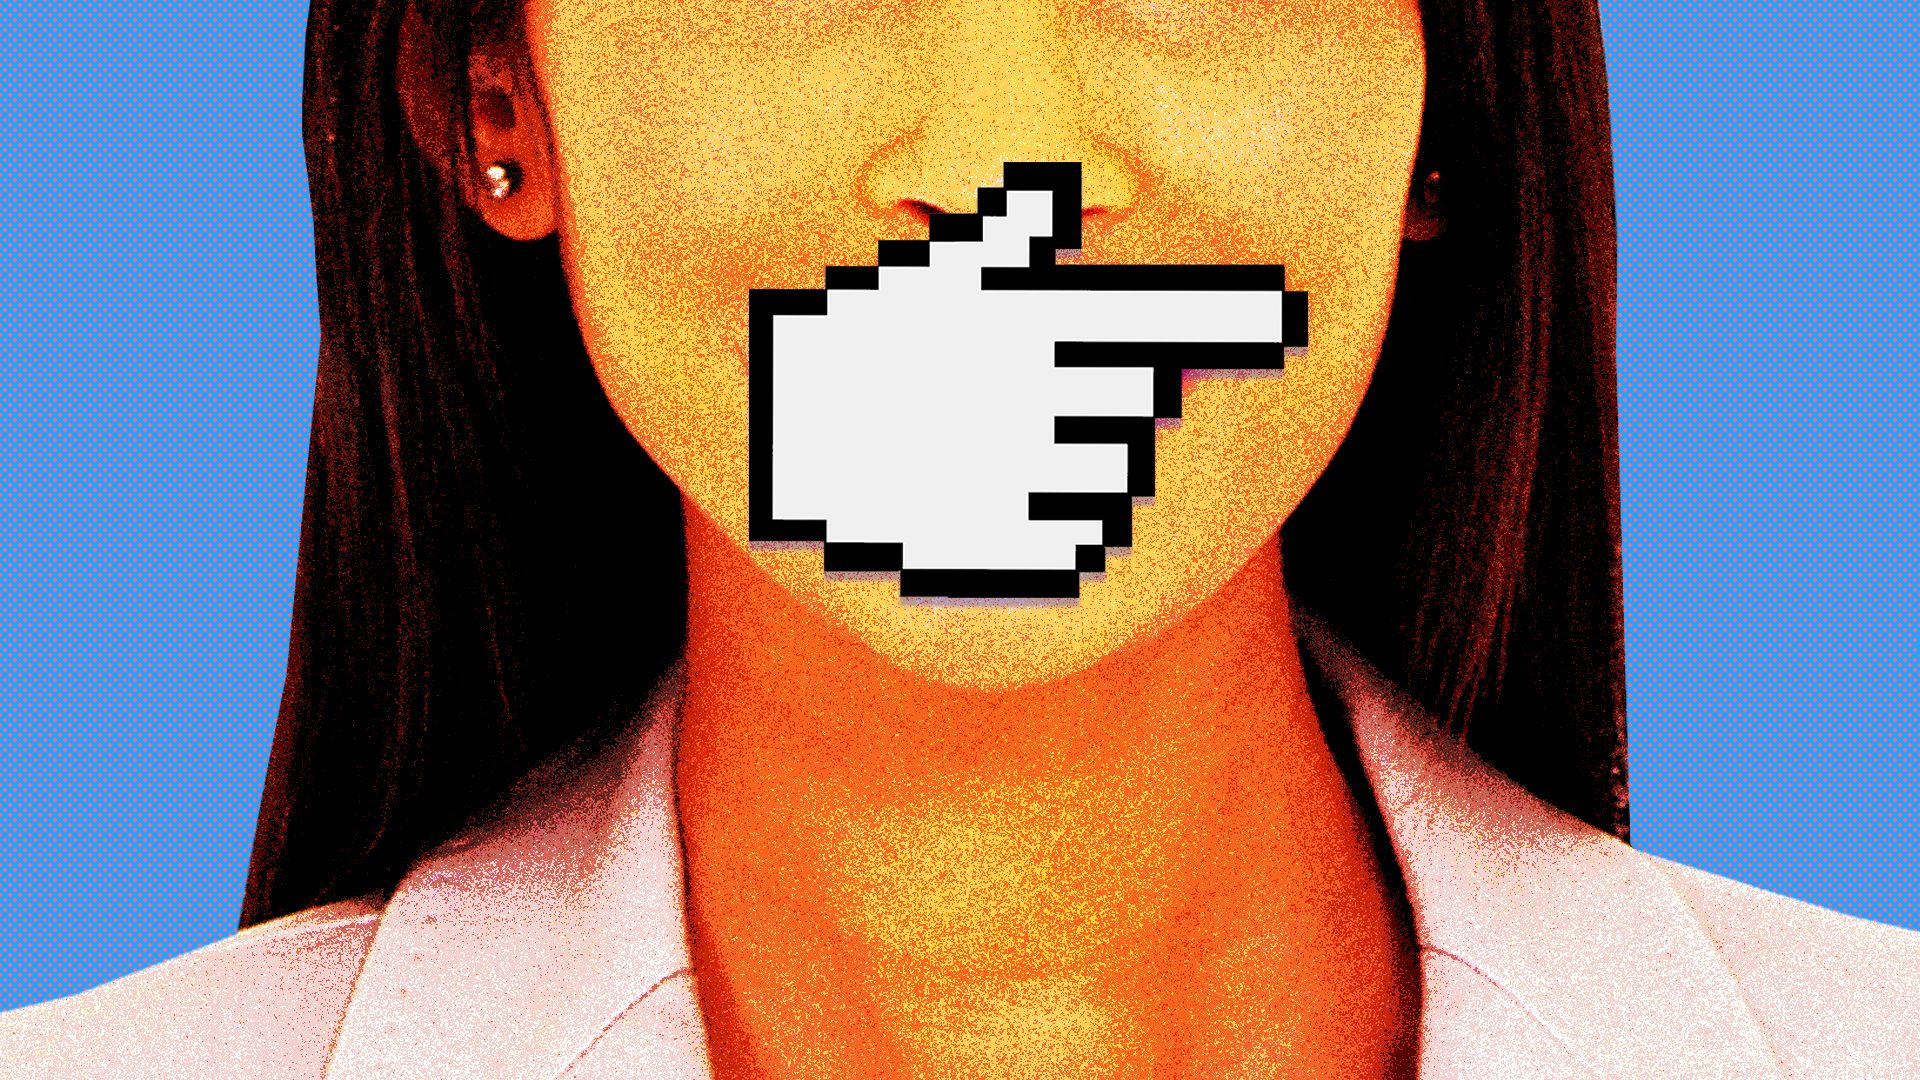 An. illustration of a woman being silenced by a hand cursor